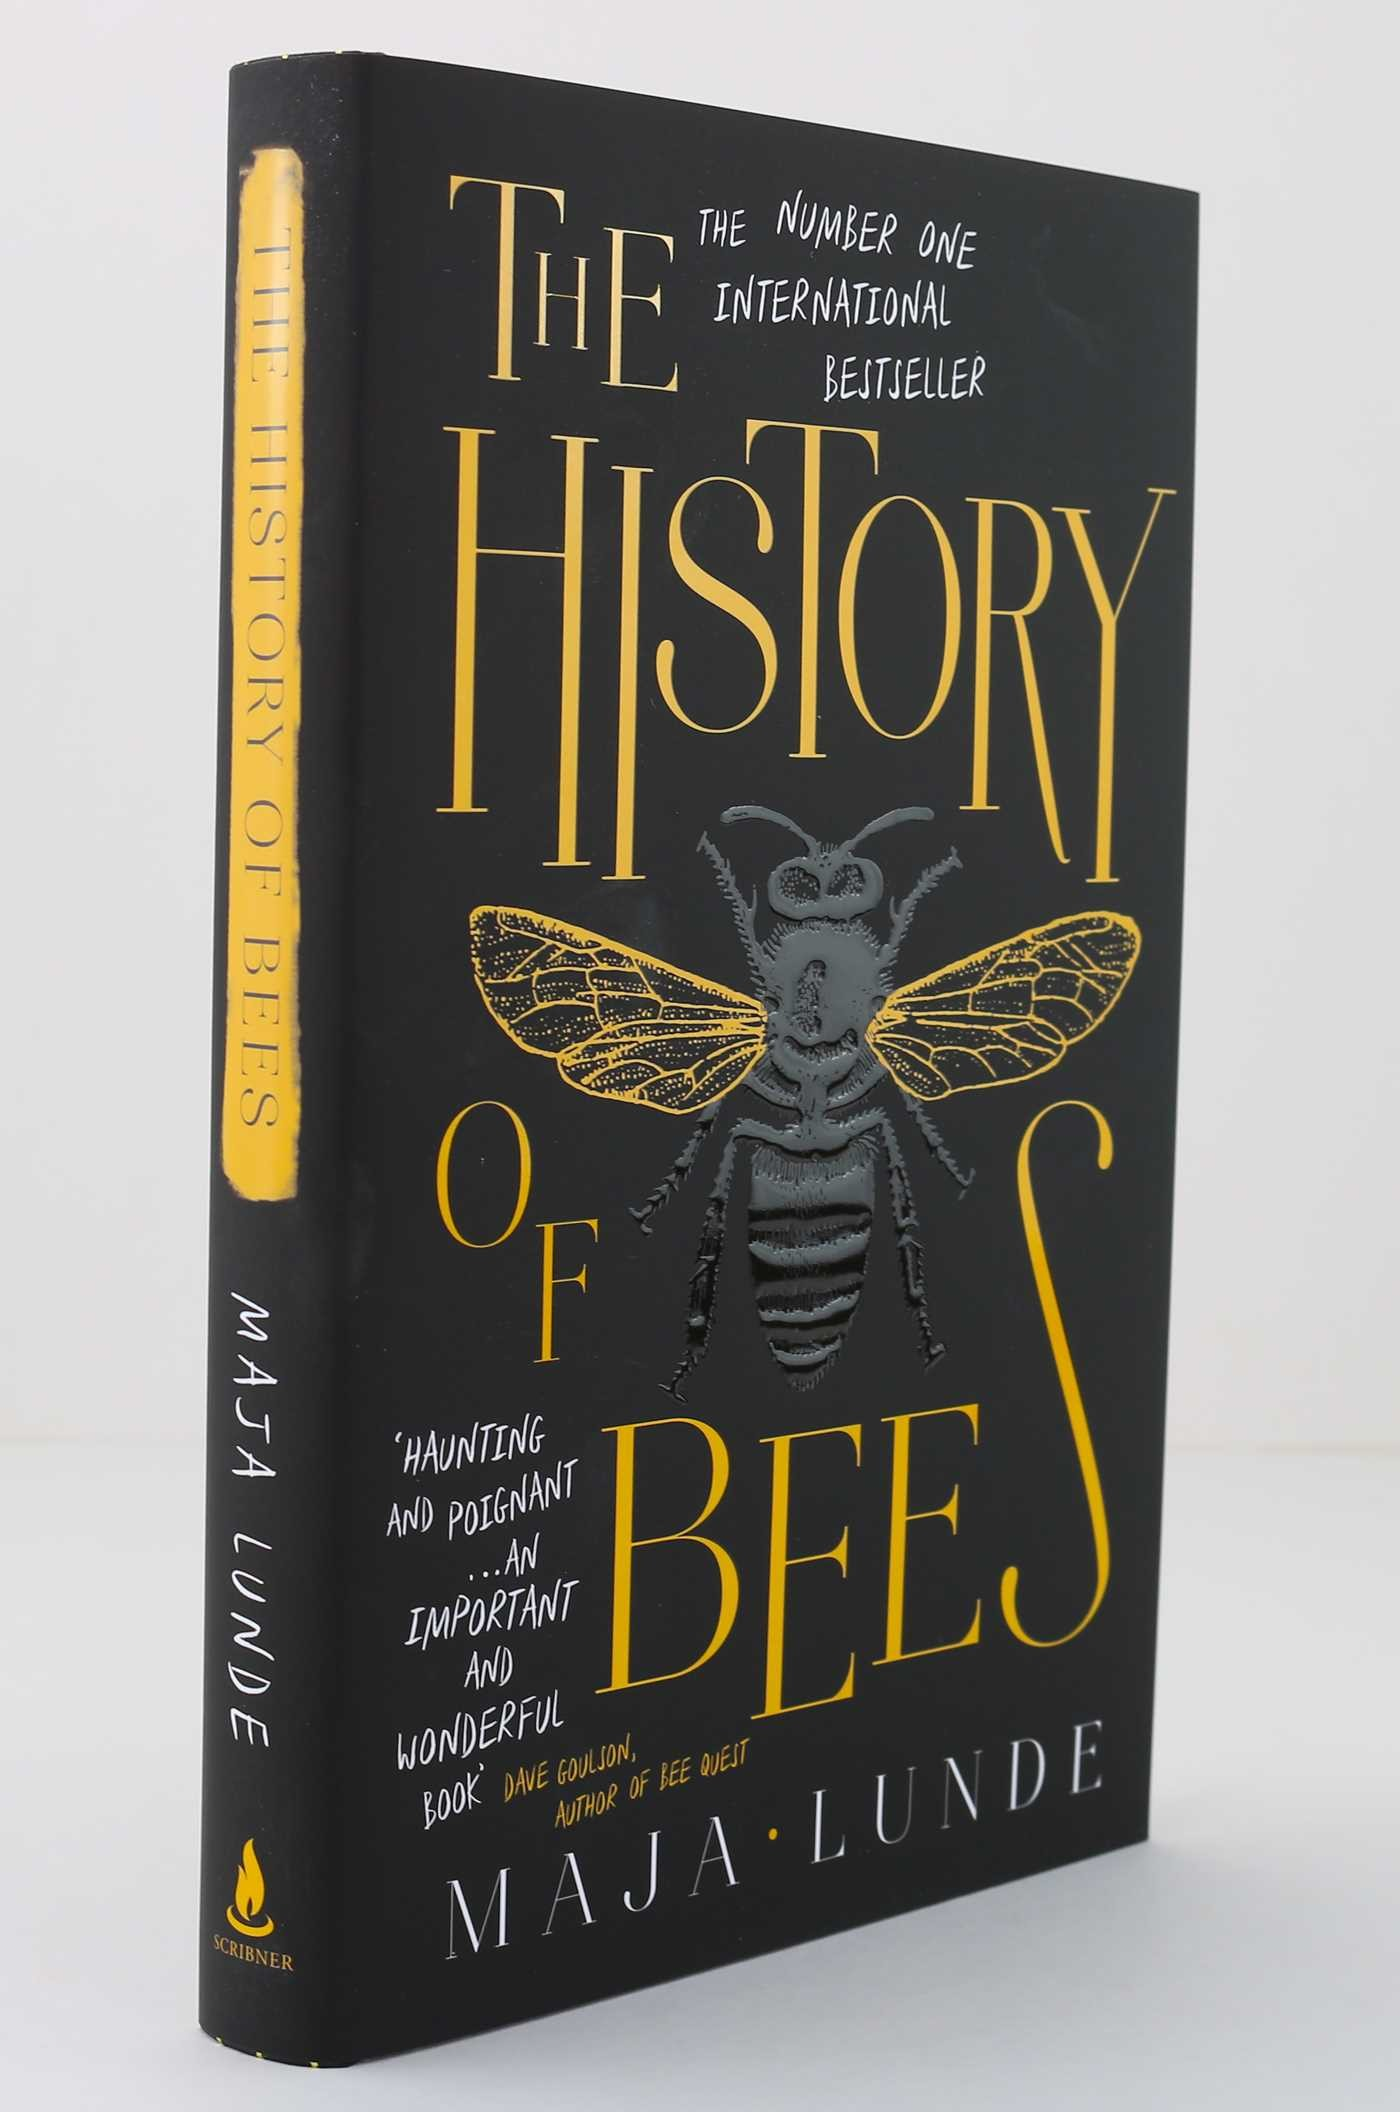 The history of bees 9781471162749.in02